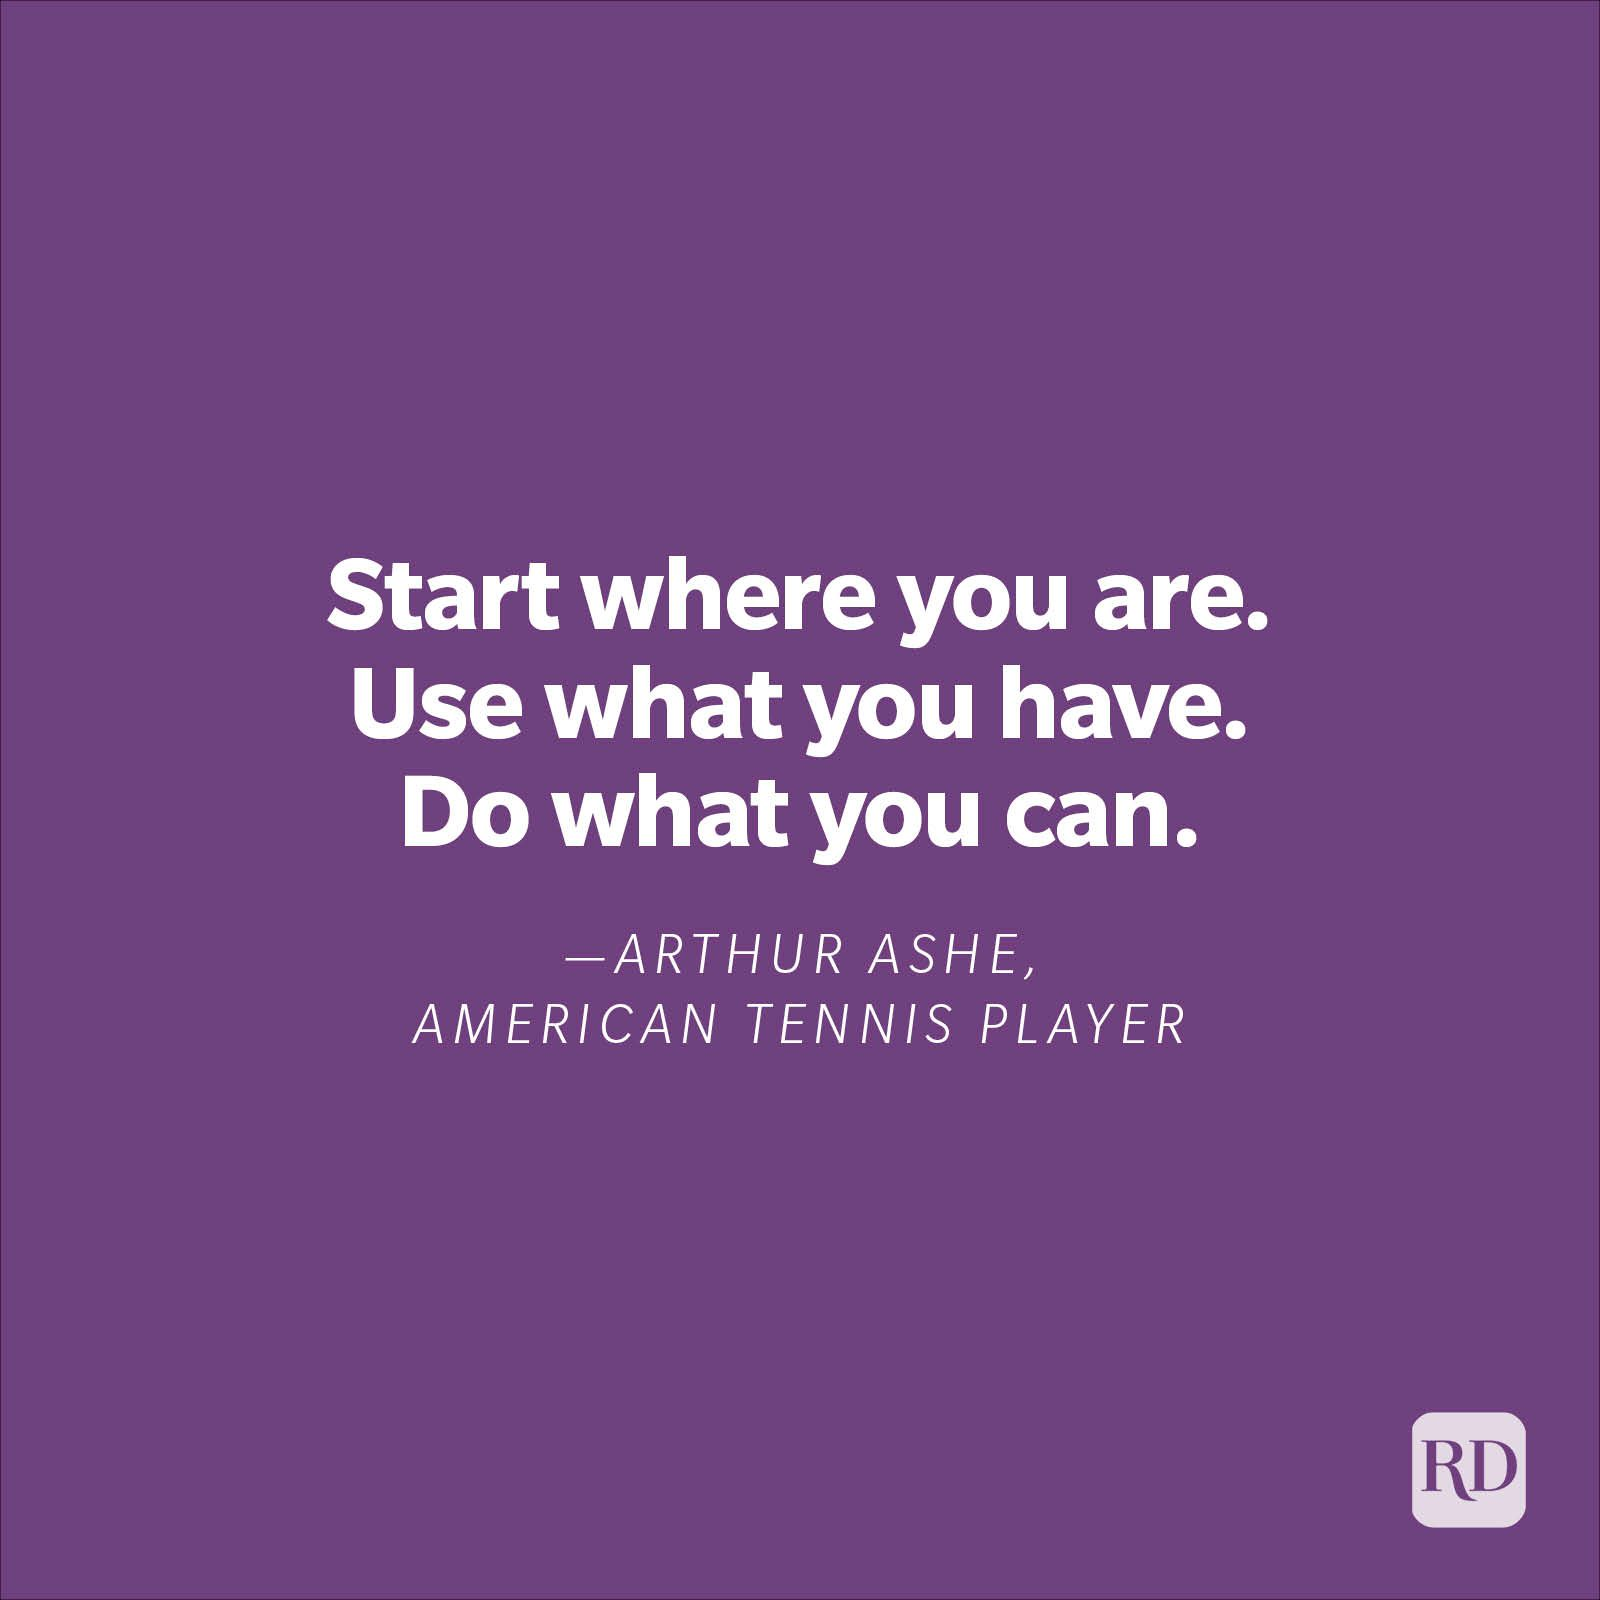 """""""Start where you are. Use what you have. Do what you can.""""—Arthur Ashe, American tennis player"""